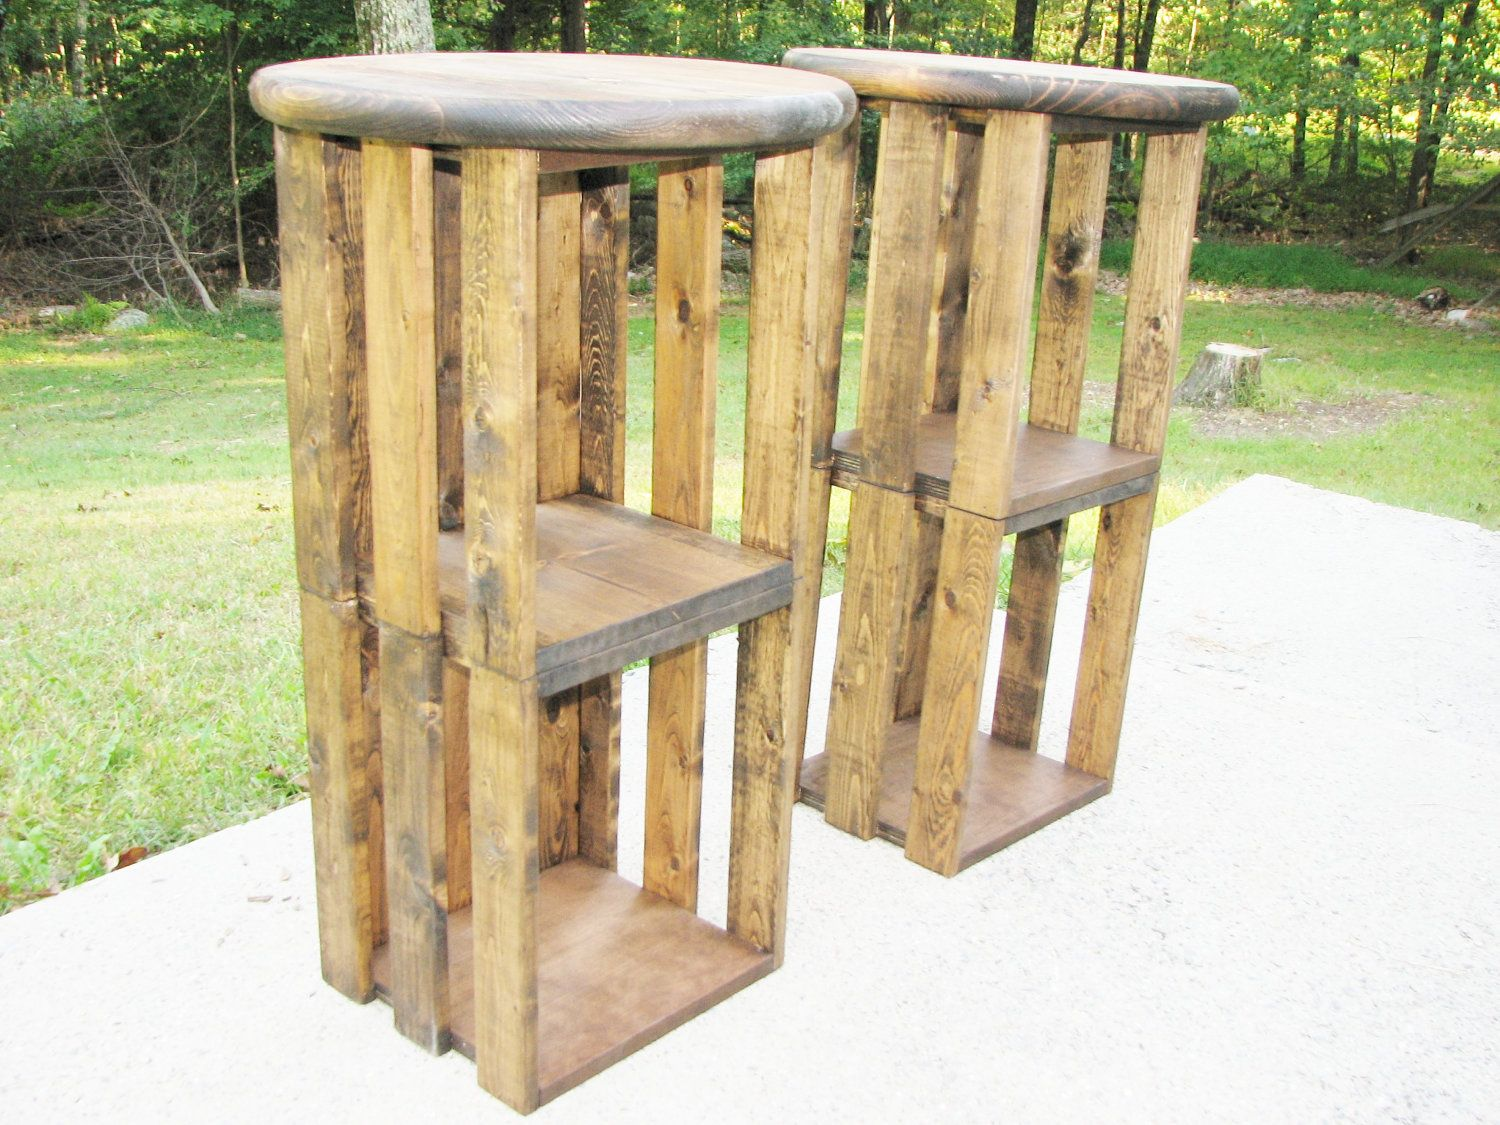 Wood Bar Stool, FREE SHIPPING, Rustic, Industrial, Crate, Distressed,  Modern, Customized